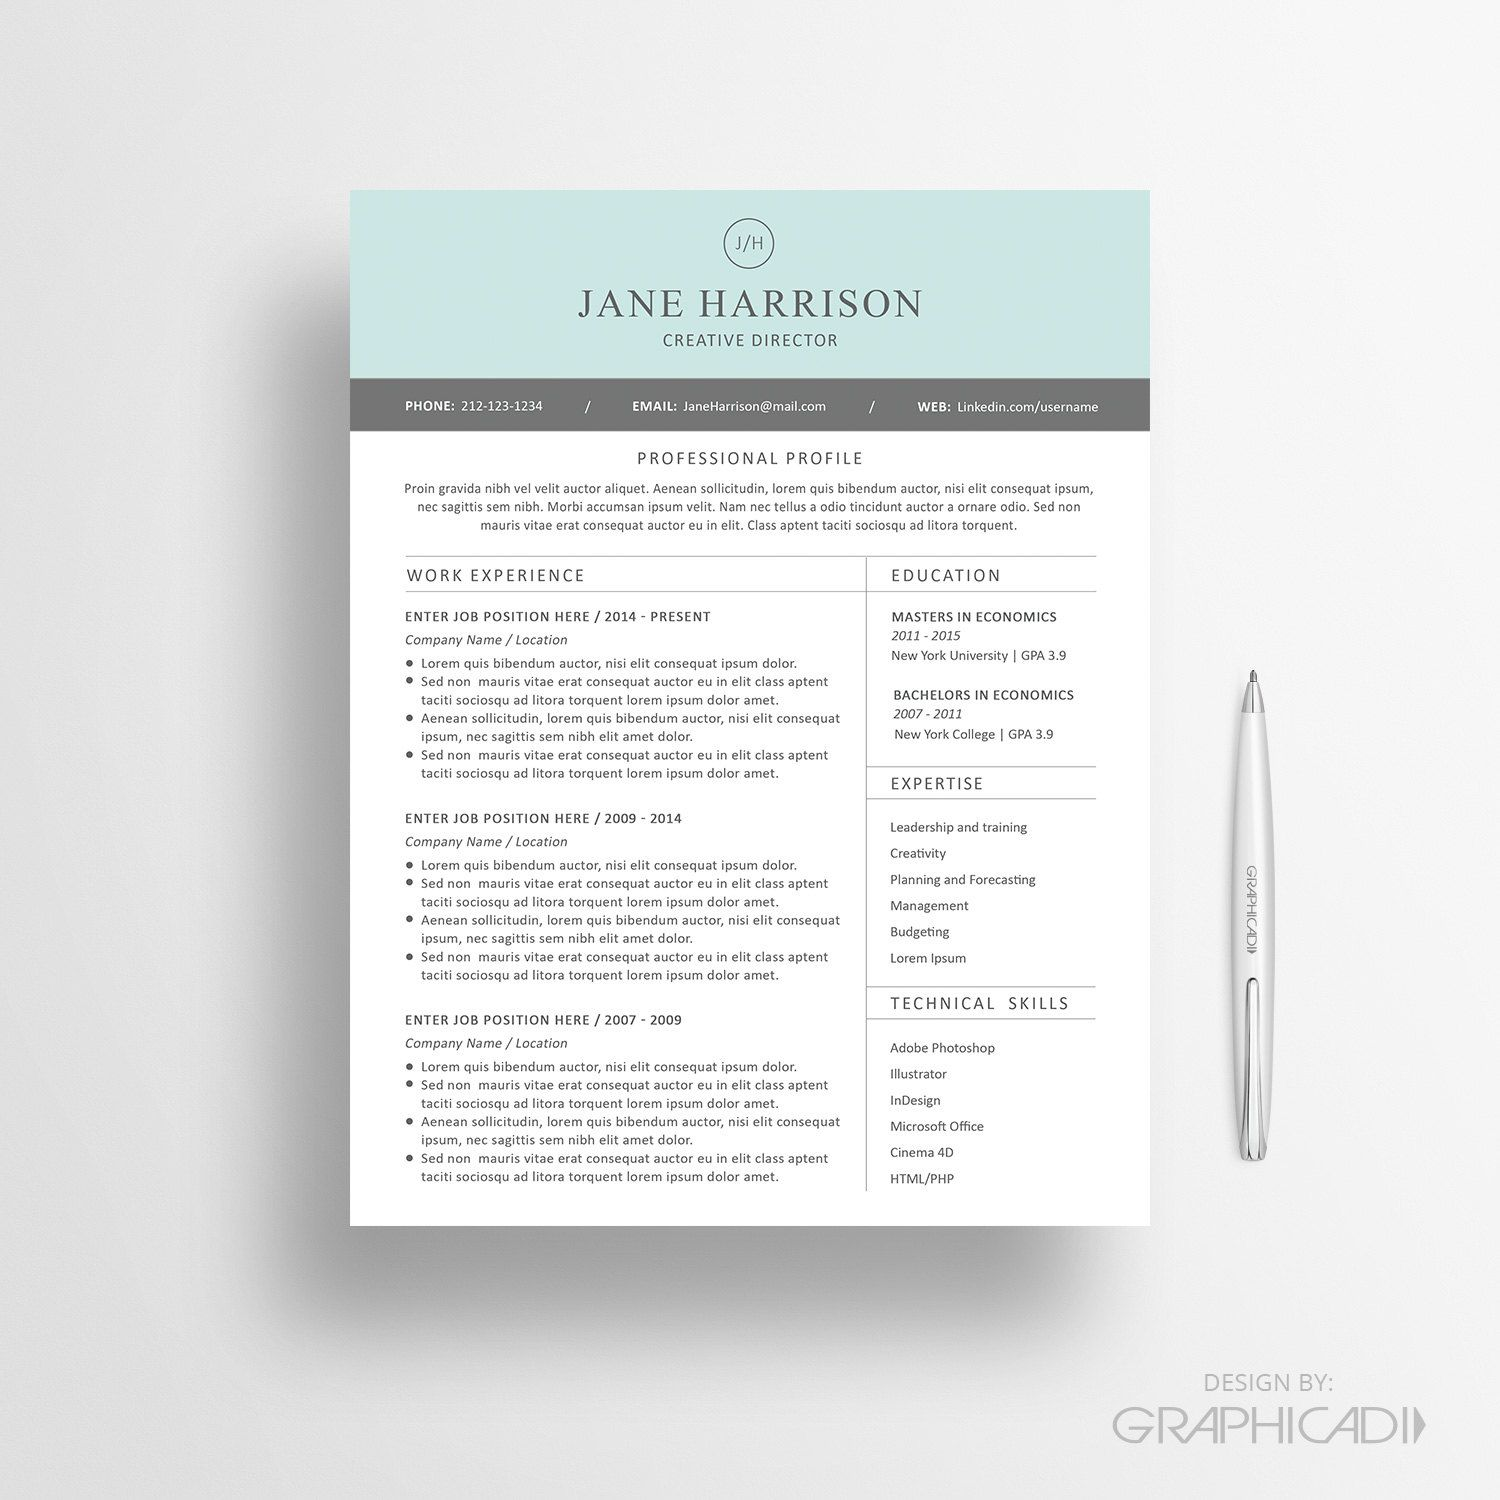 Resume Template - CV Template And Cover Letter For MS Word By Graphicadi